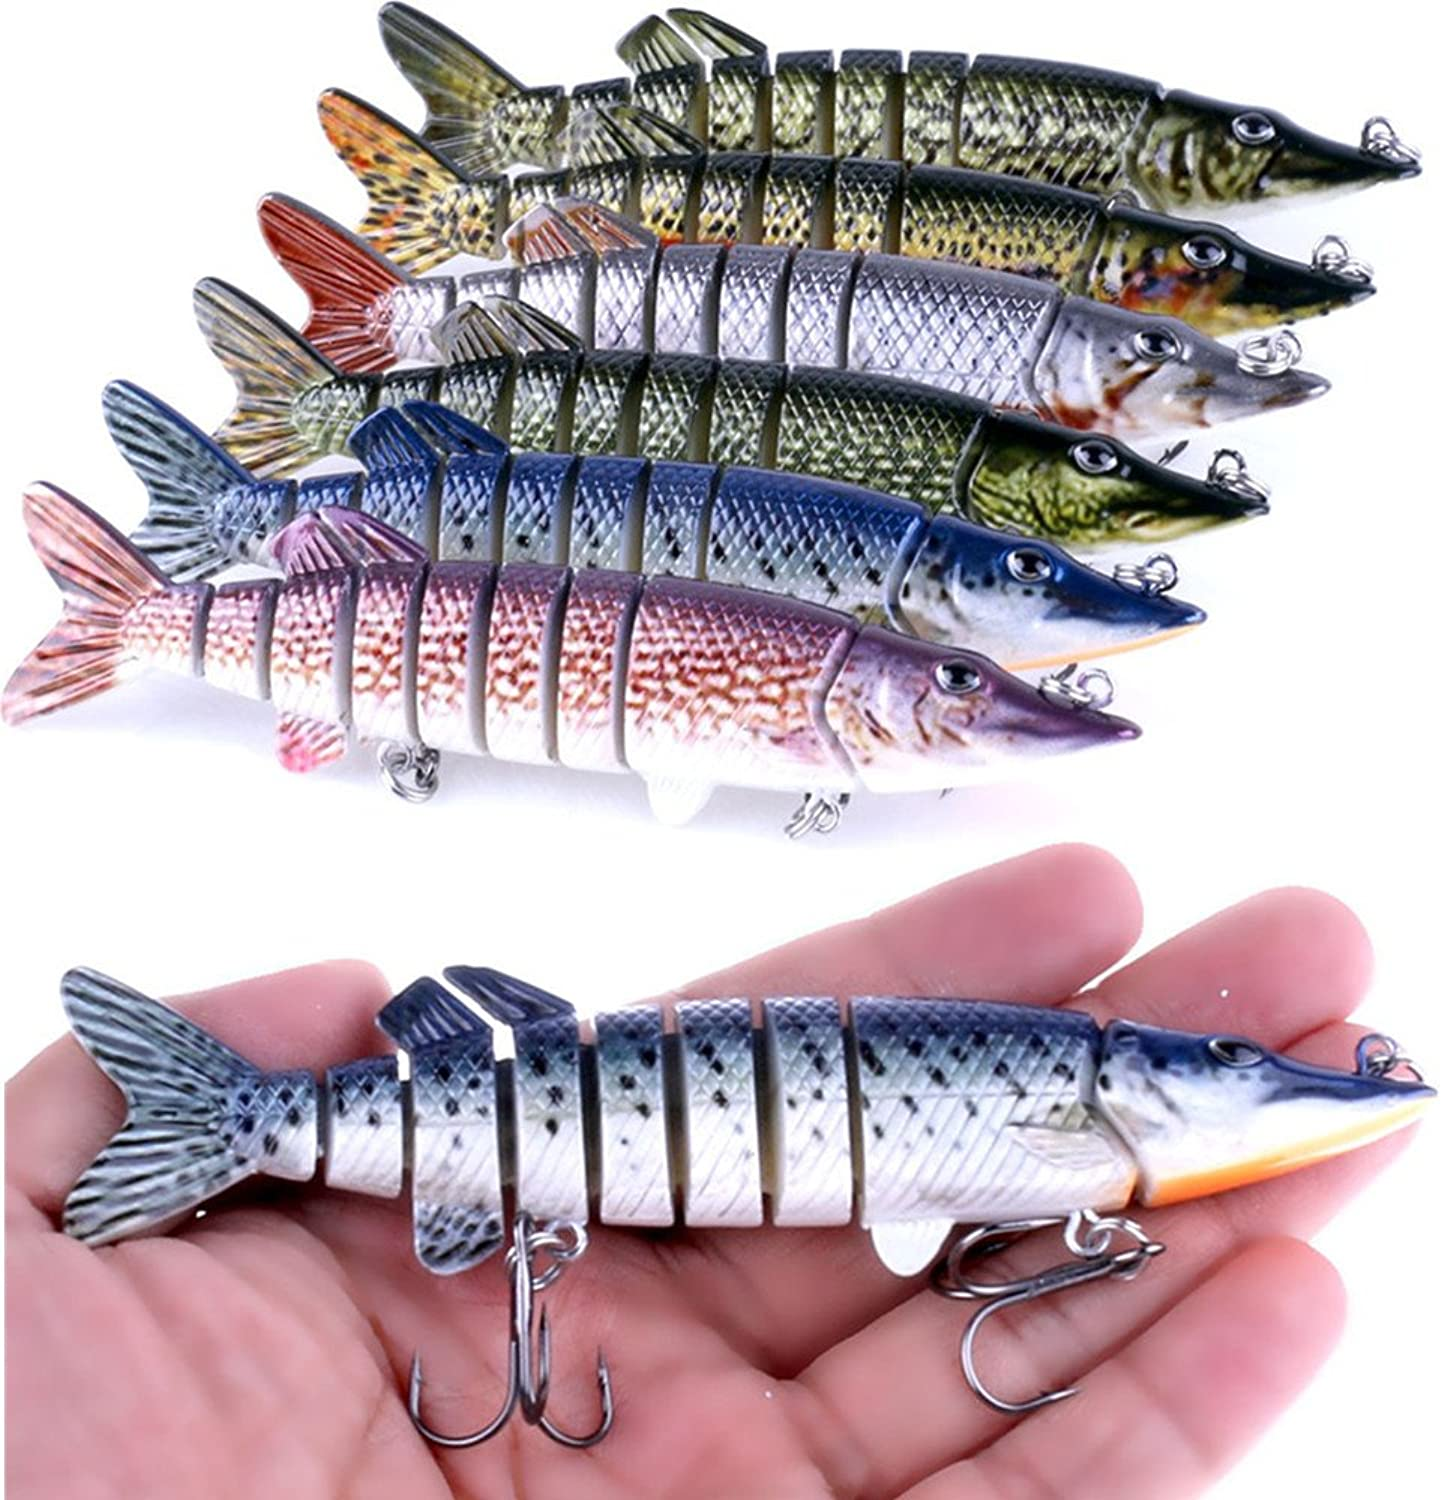 A-SZCXTOP Multi Jointed Fishing Lures Hard Baits Lifelike 9 Segments Swimbait Bass Crankbaits Perch Pike Walleye Trout Fishing Baits 6pcs